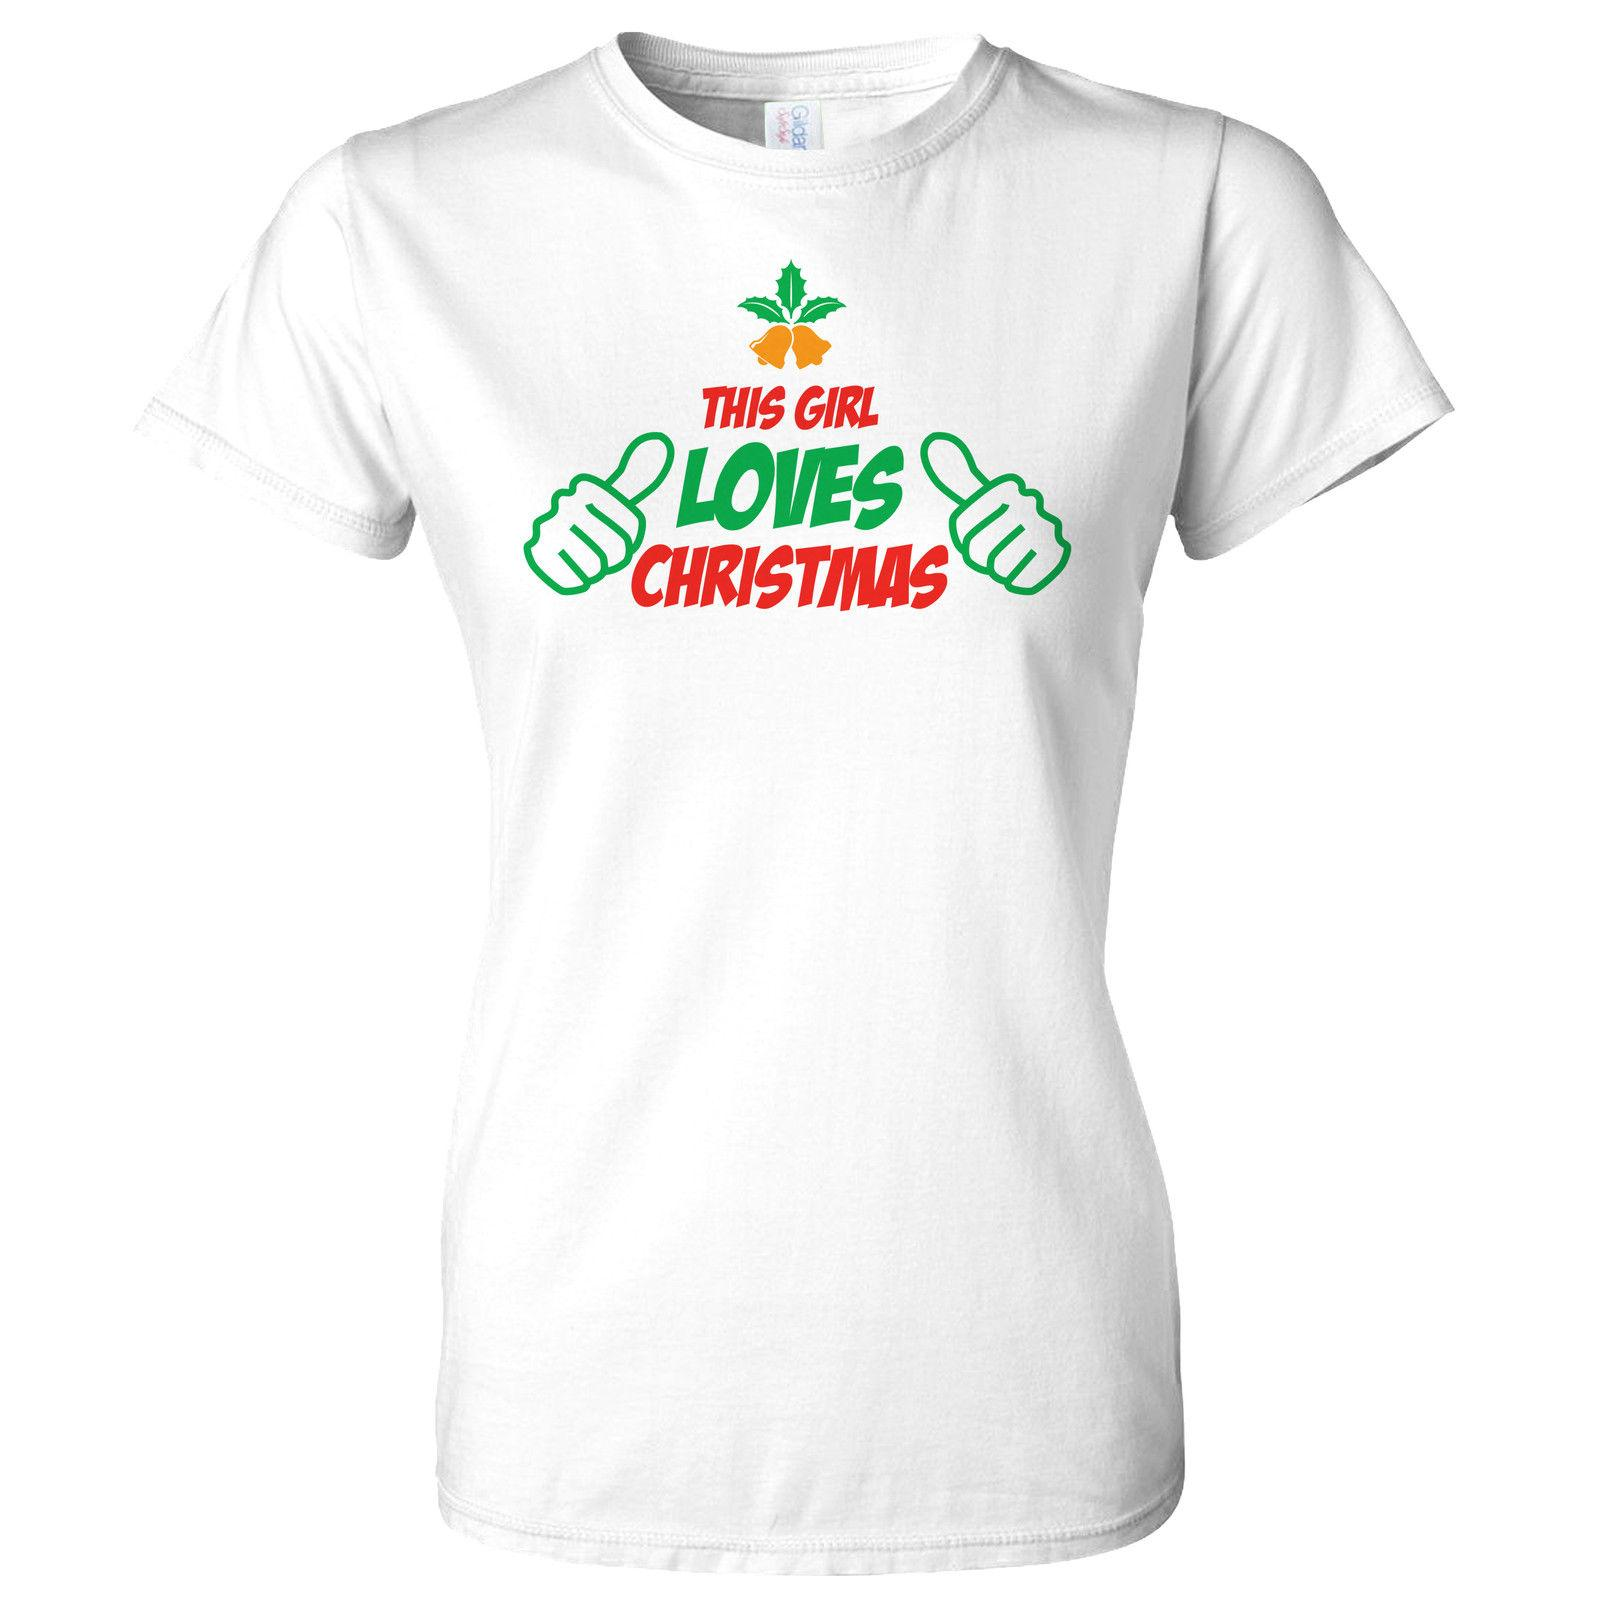 THIS GIRL LOVES CHRISTMAS DESIGN XMAS WOMENS T SHIRT GIFT PRESENT ...